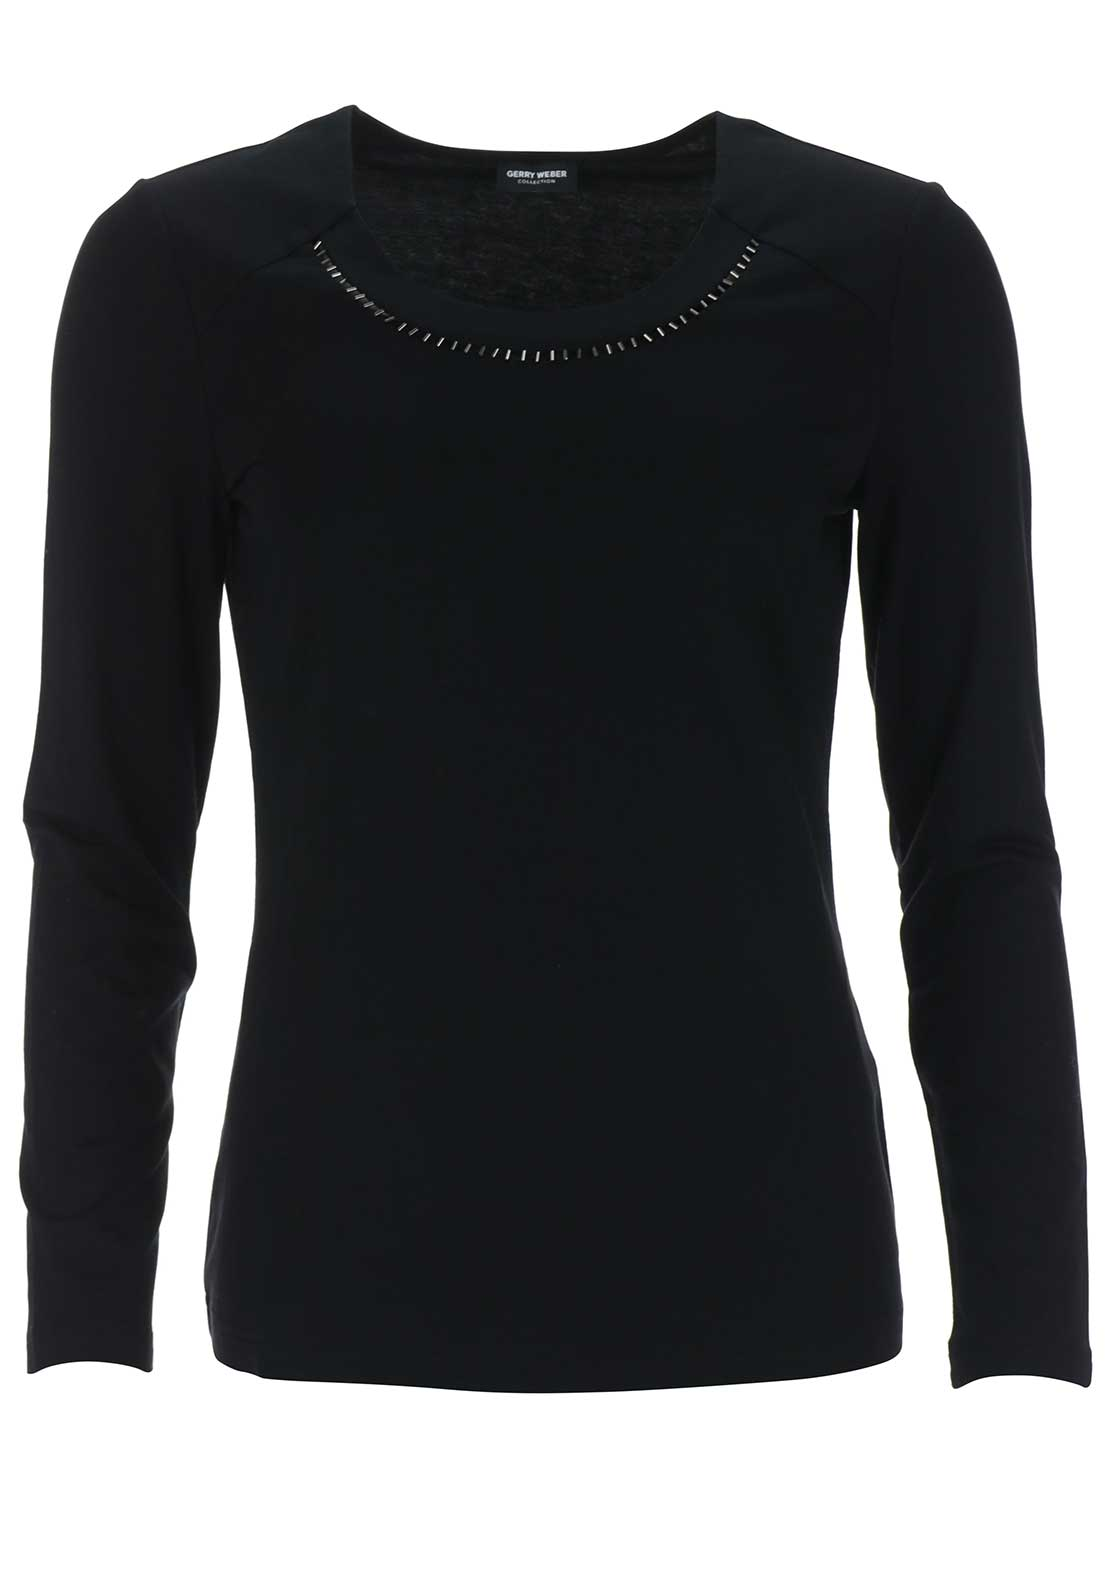 Gerry Weber Sheer Trim Long Sleeve Top, Black